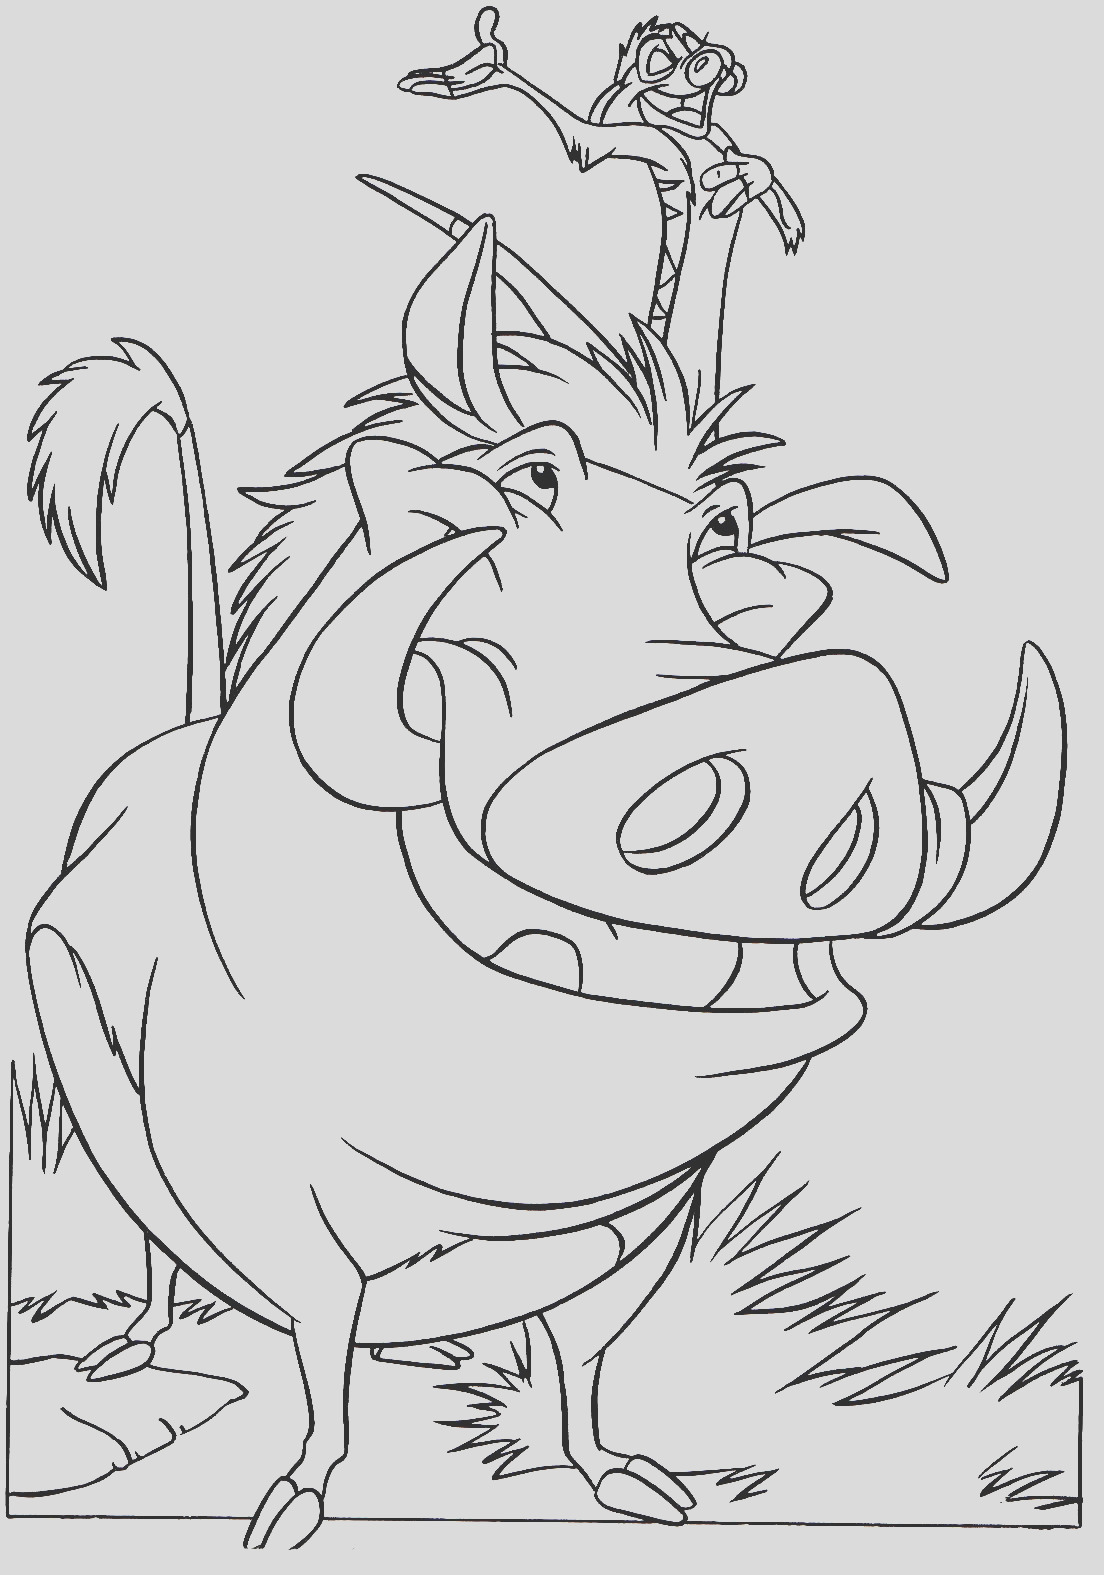 image=the lion king Coloring for kids the lion king 1